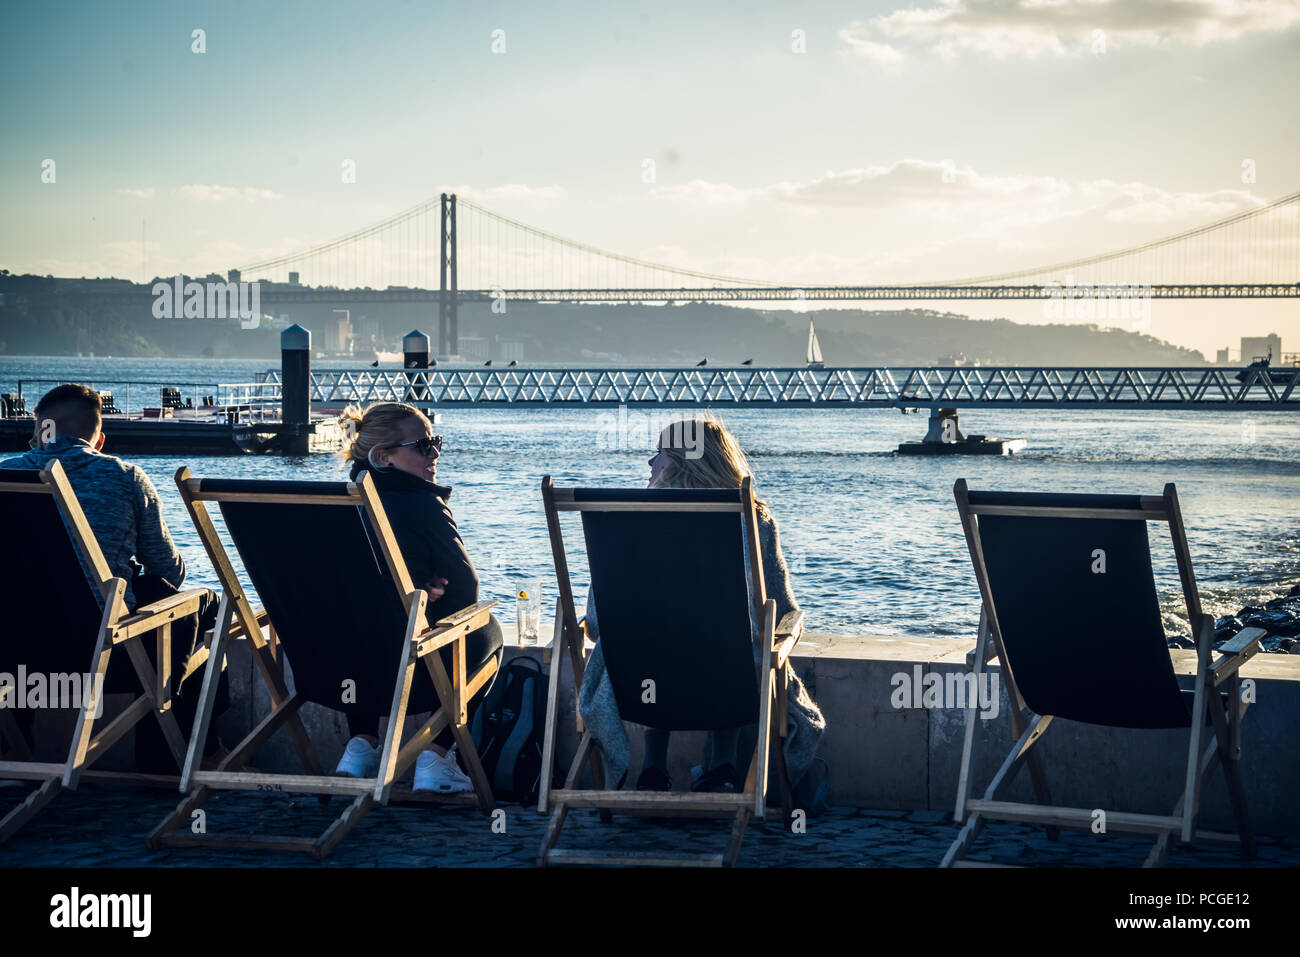 Lisbon. Peaple sitting in deck chairs by the river Targus. - Stock Image